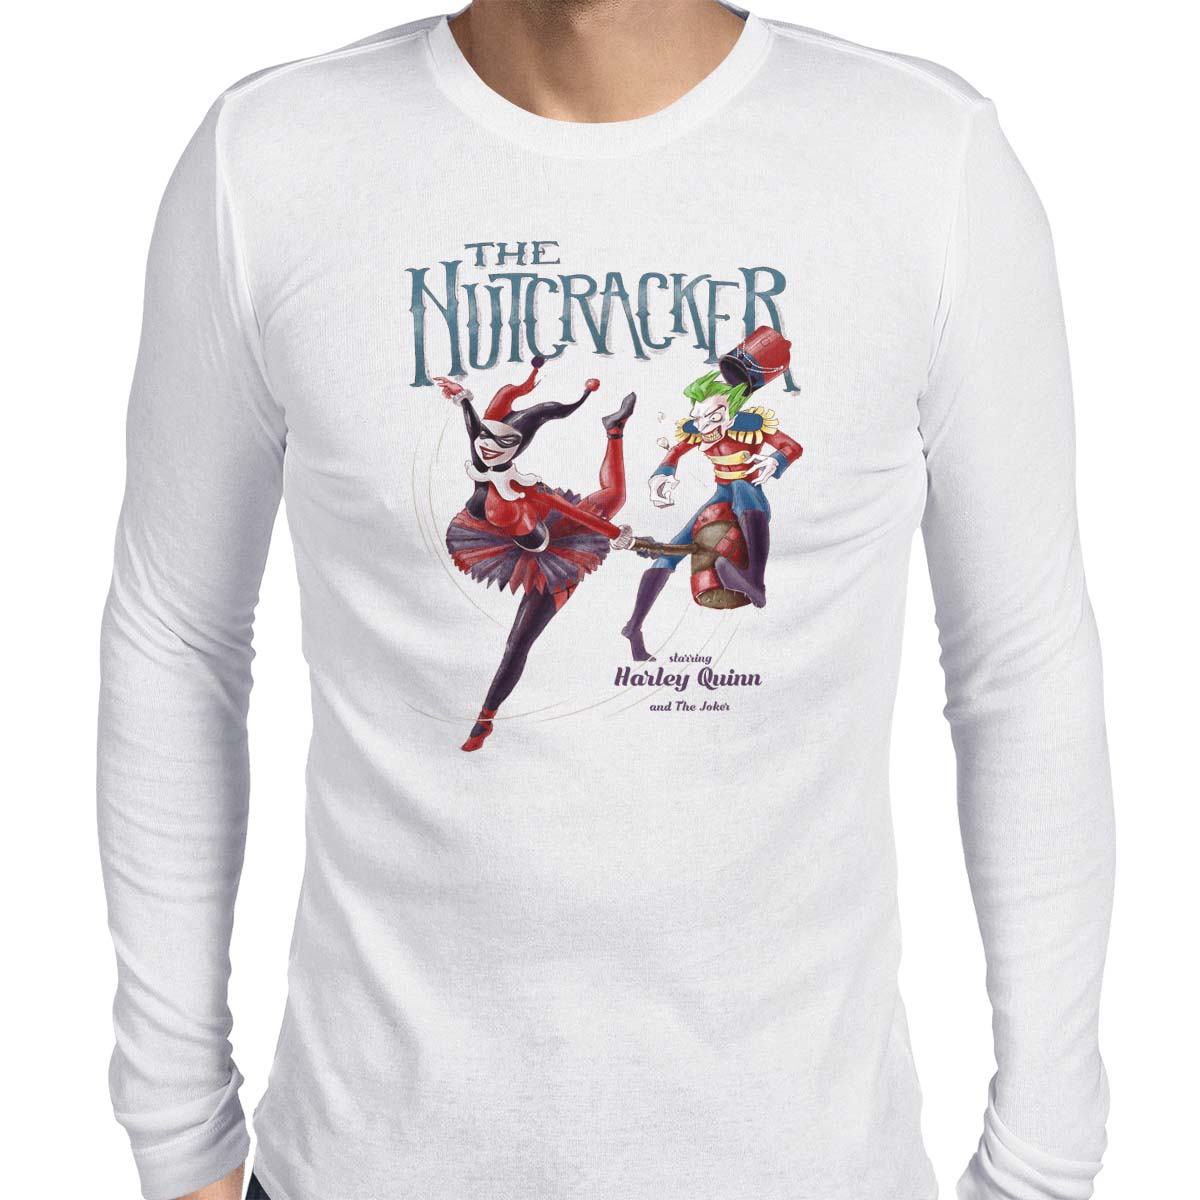 harley quinn t-shirt nutcracker white